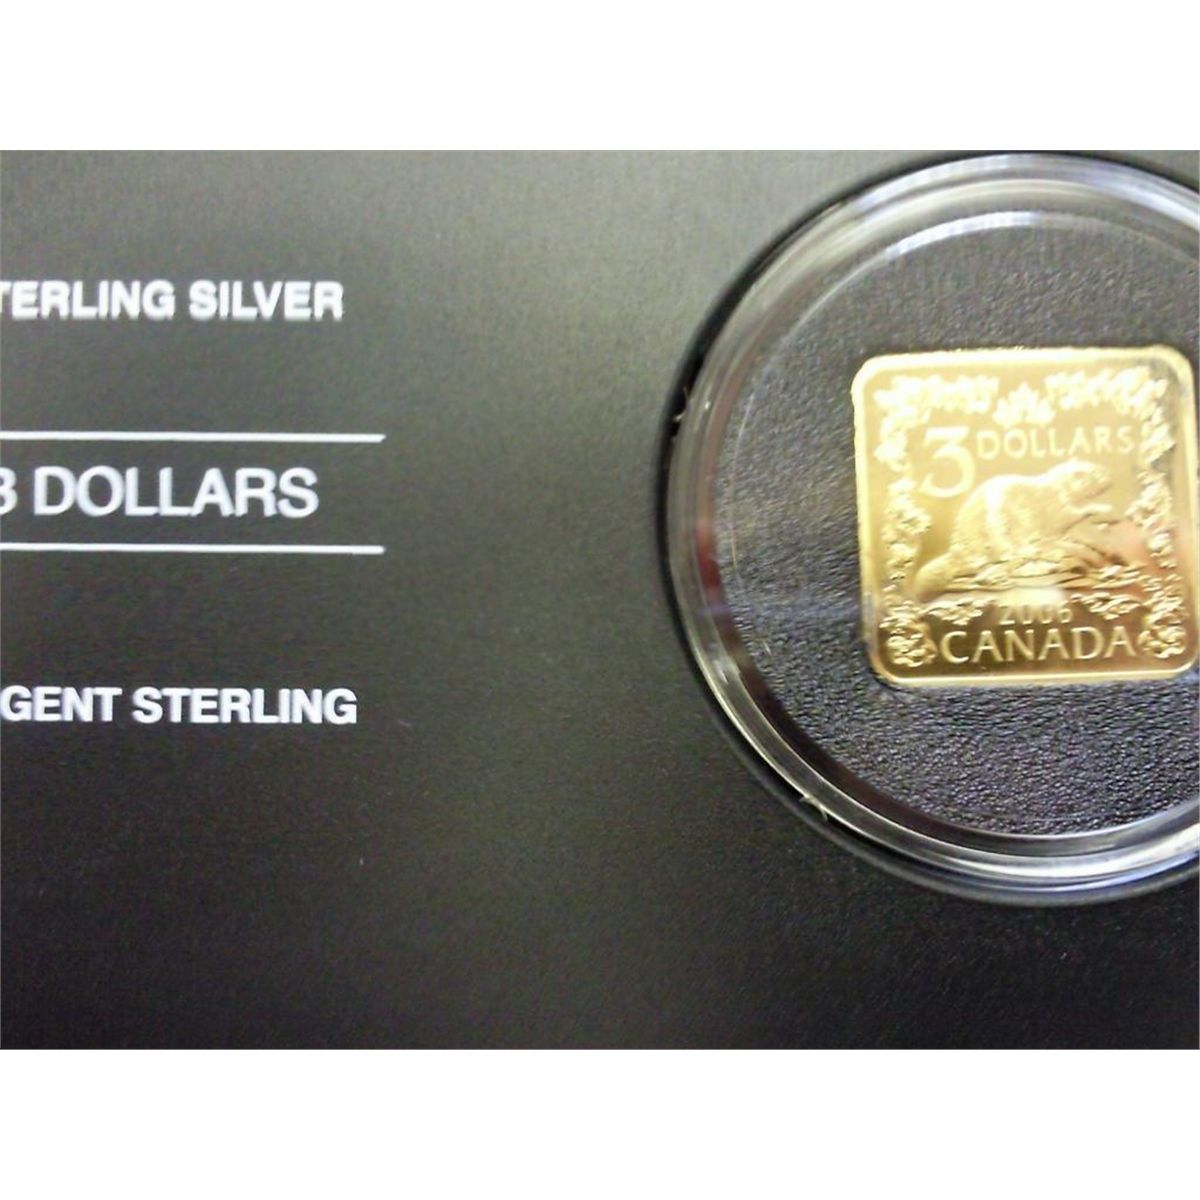 2006 Canada $3 Beaver Sterling Silver Square Coin